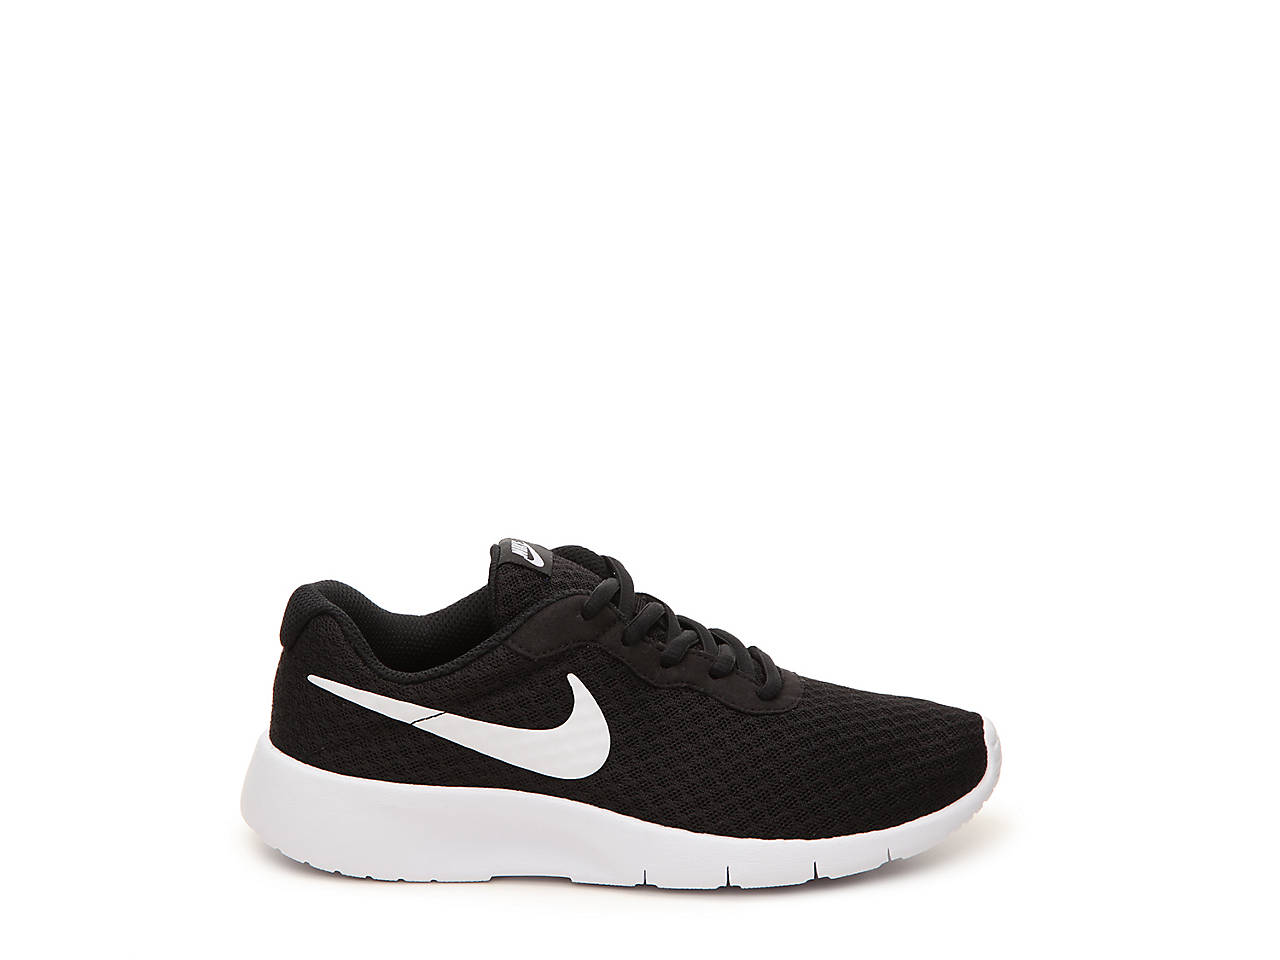 9d4decad2cb ... clearance nike tanjun youth sneaker kids shoes dsw 30ef0 42c26